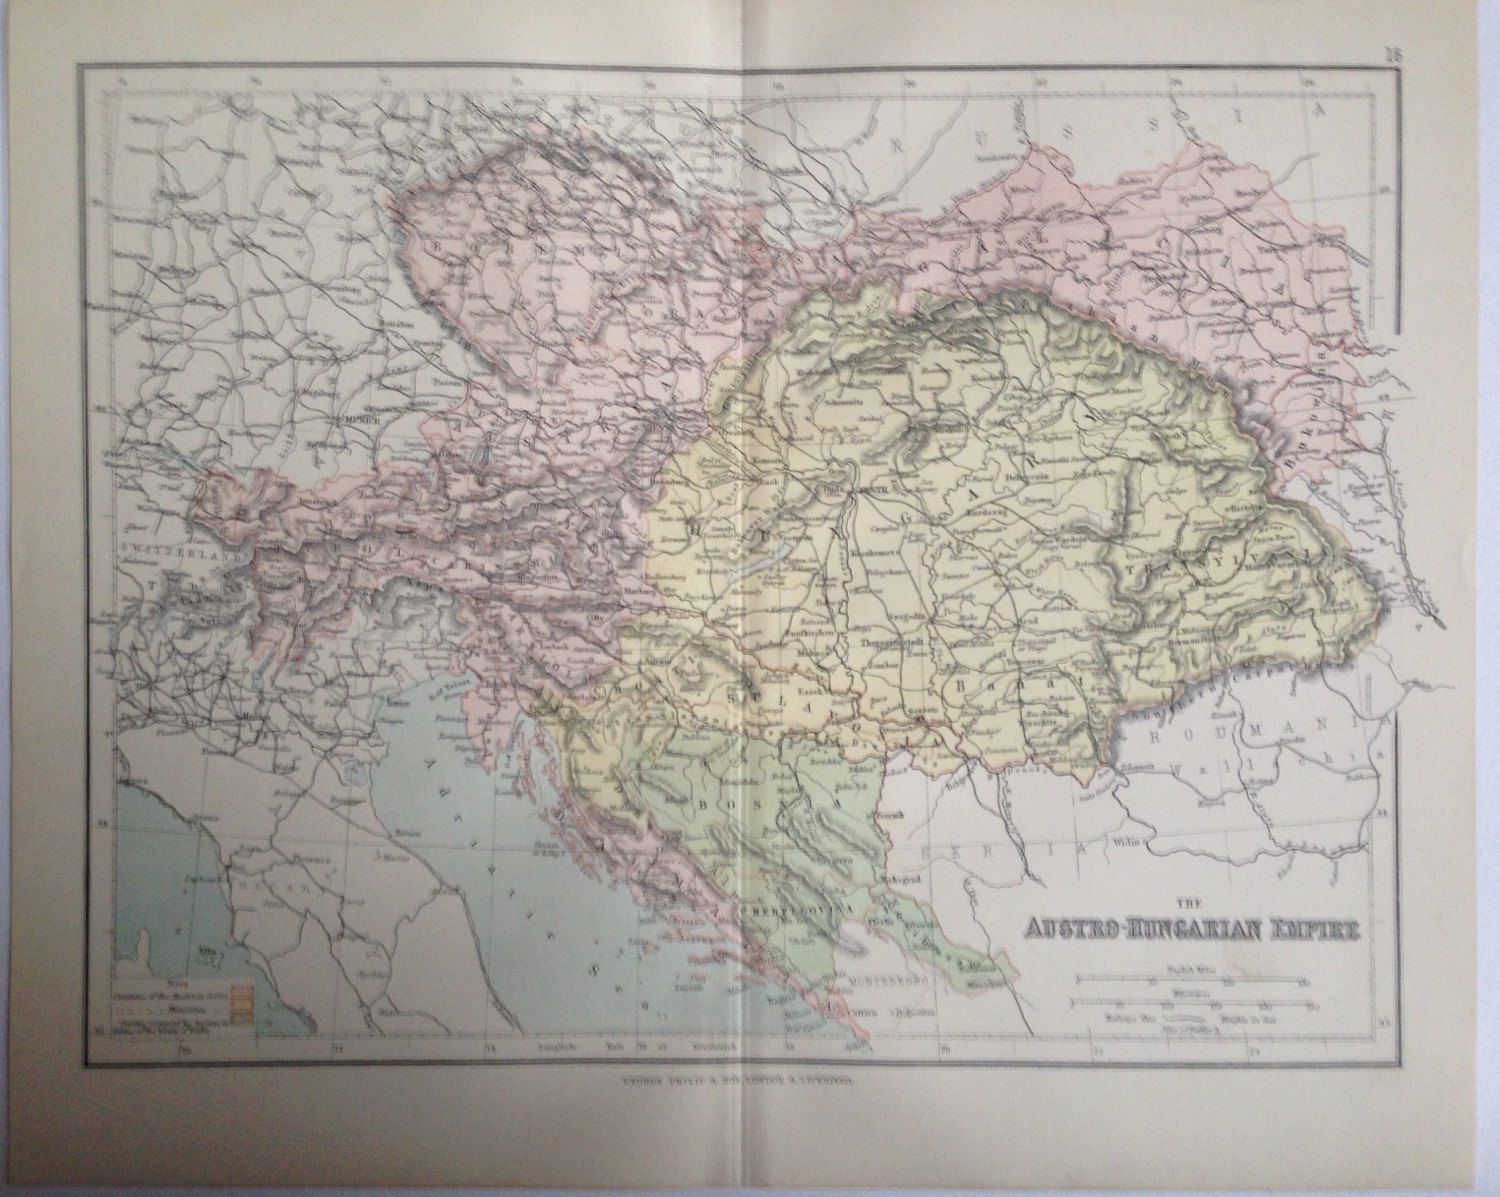 1887 AUSTRO HUNGARIAN EMPIRE map antique original colour